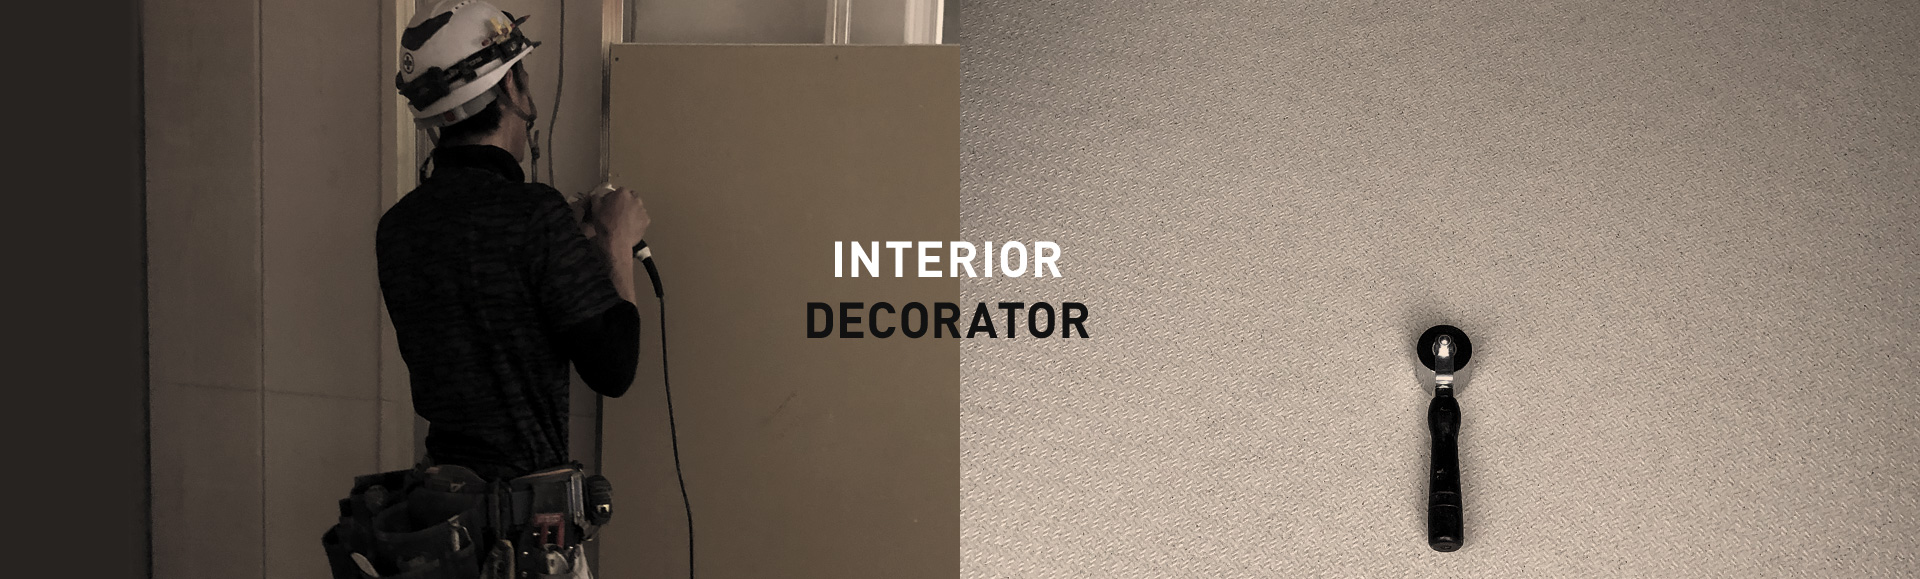 INTERIOR DECORATOR